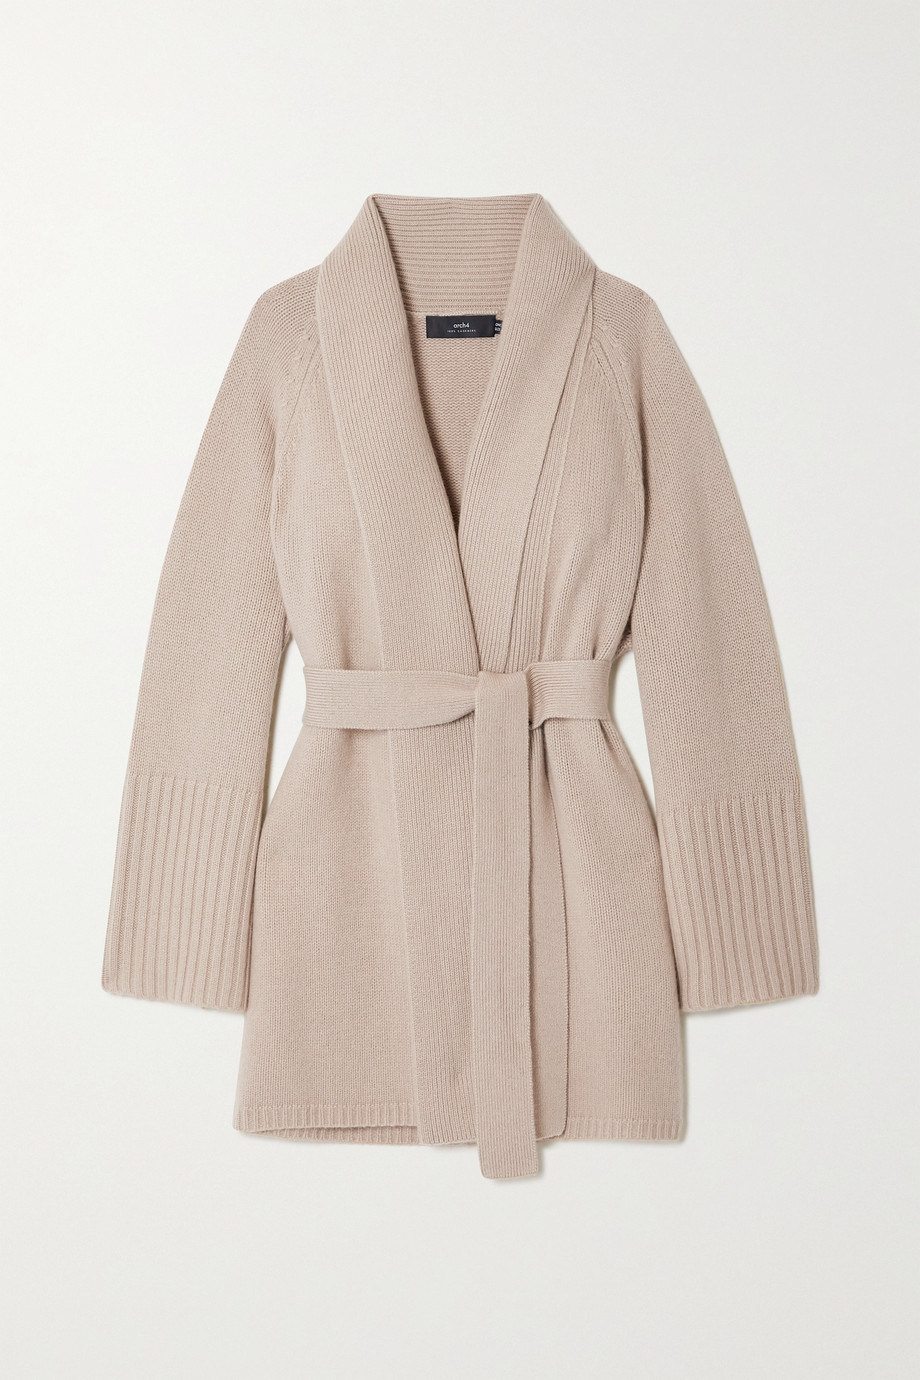 Arch4 + NET SUSTAIN Charlotte Mews belted cashmere cardigan